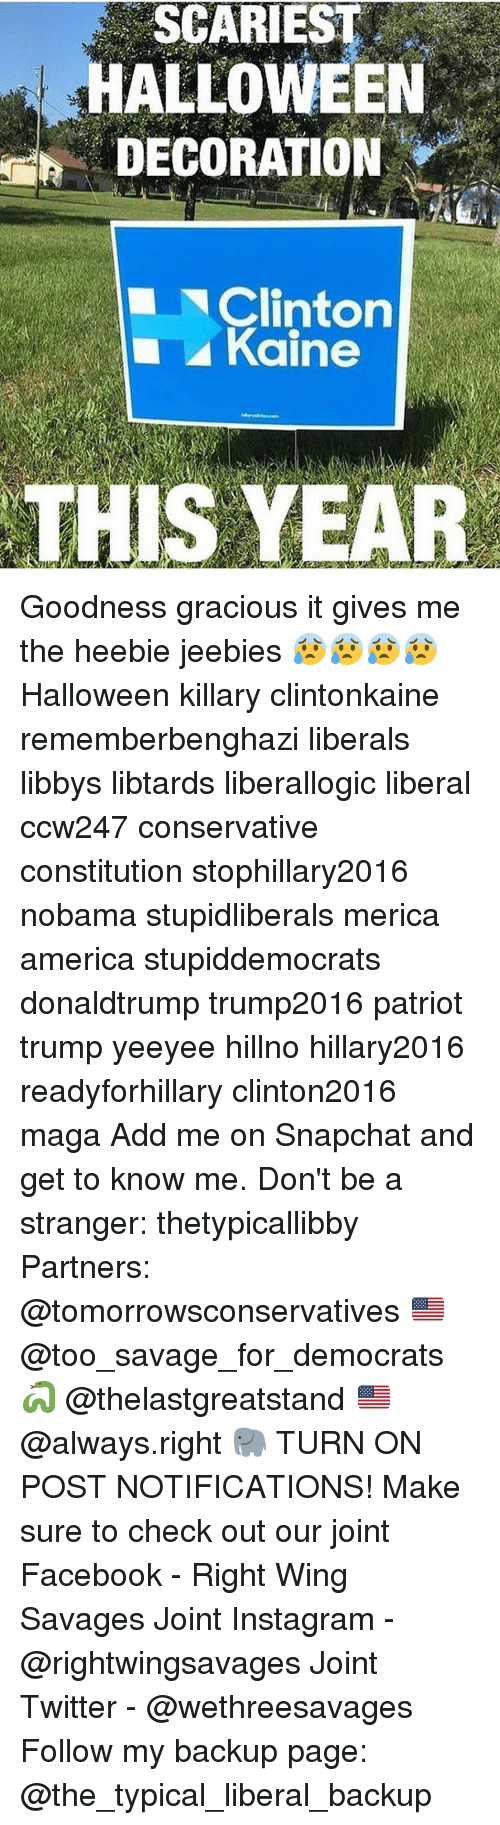 Hillary2016: SCARIEST  HALLOWEEN  DECORATION  Clinton  Kaine  THIS YEAR Goodness gracious it gives me the heebie jeebies 😰😰😰😰 Halloween killary clintonkaine rememberbenghazi liberals libbys libtards liberallogic liberal ccw247 conservative constitution stophillary2016 nobama stupidliberals merica america stupiddemocrats donaldtrump trump2016 patriot trump yeeyee hillno hillary2016 readyforhillary clinton2016 maga Add me on Snapchat and get to know me. Don't be a stranger: thetypicallibby Partners: @tomorrowsconservatives 🇺🇸 @too_savage_for_democrats 🐍 @thelastgreatstand 🇺🇸 @always.right 🐘 TURN ON POST NOTIFICATIONS! Make sure to check out our joint Facebook - Right Wing Savages Joint Instagram - @rightwingsavages Joint Twitter - @wethreesavages Follow my backup page: @the_typical_liberal_backup